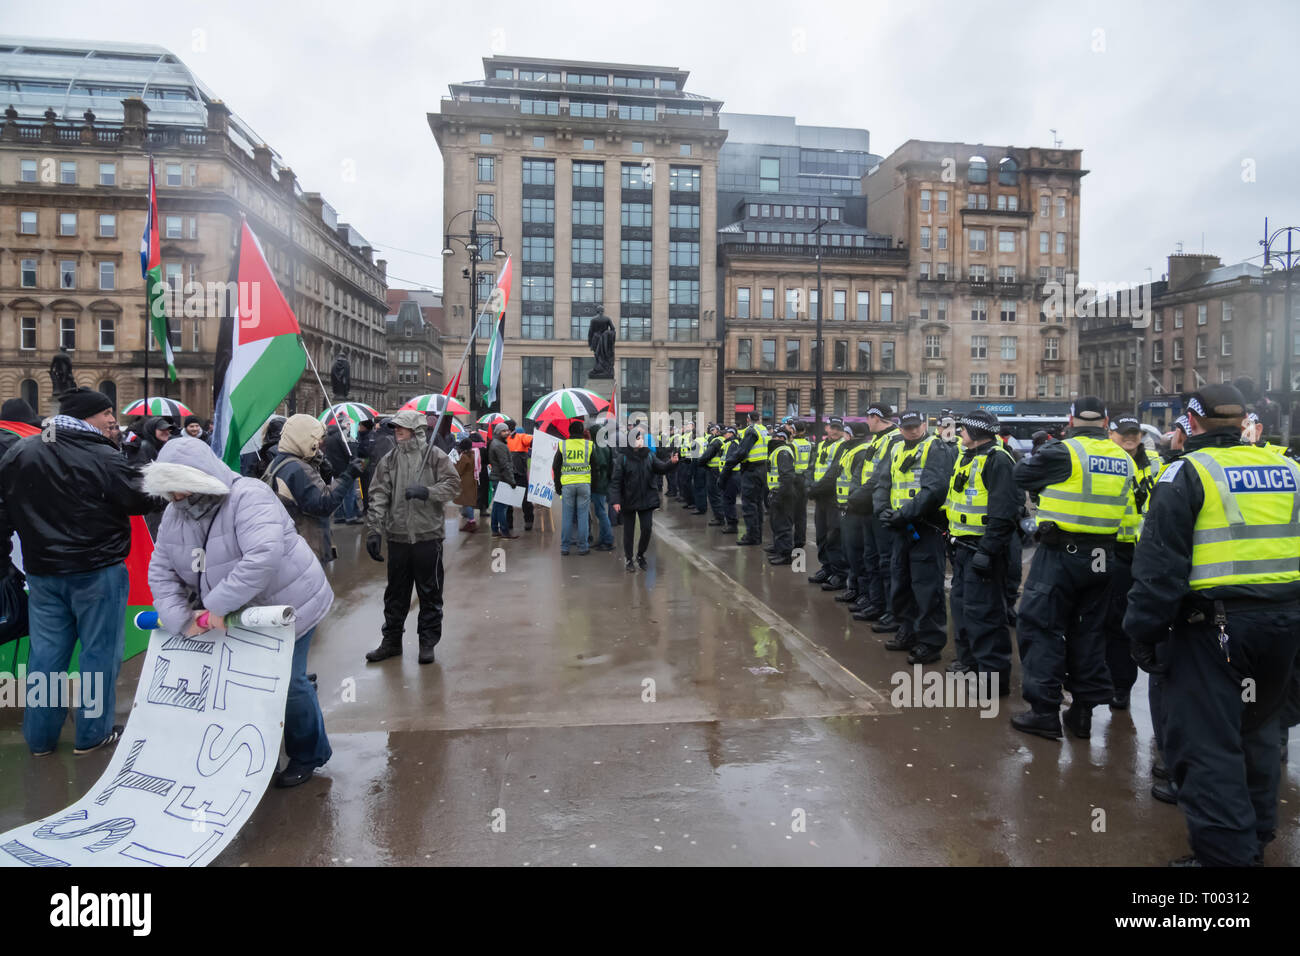 Glasgow, Scotland, UK. 15th March, 2019: Stand Up To Racism campaigners demonstrate in George Square. Credit: Skully/Alamy Live News - Stock Image